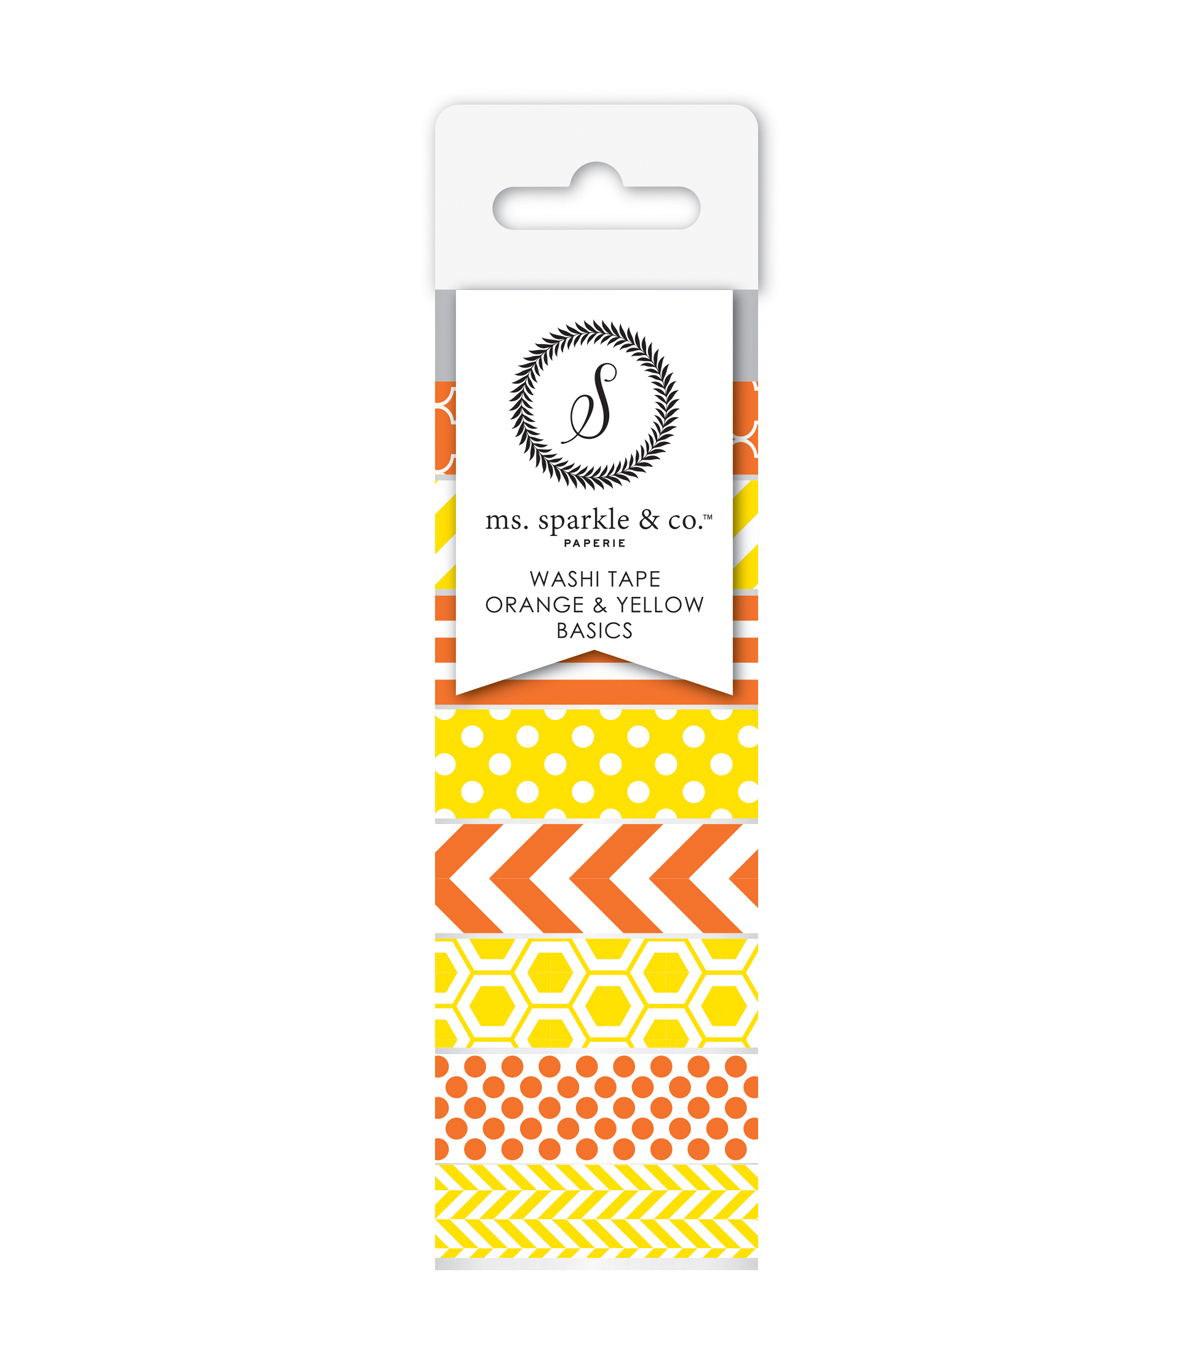 Ms. Sparkle & Co. 8 pk Washi Tapes 0.6 mmx10 yds-Orange & Yellow Basics